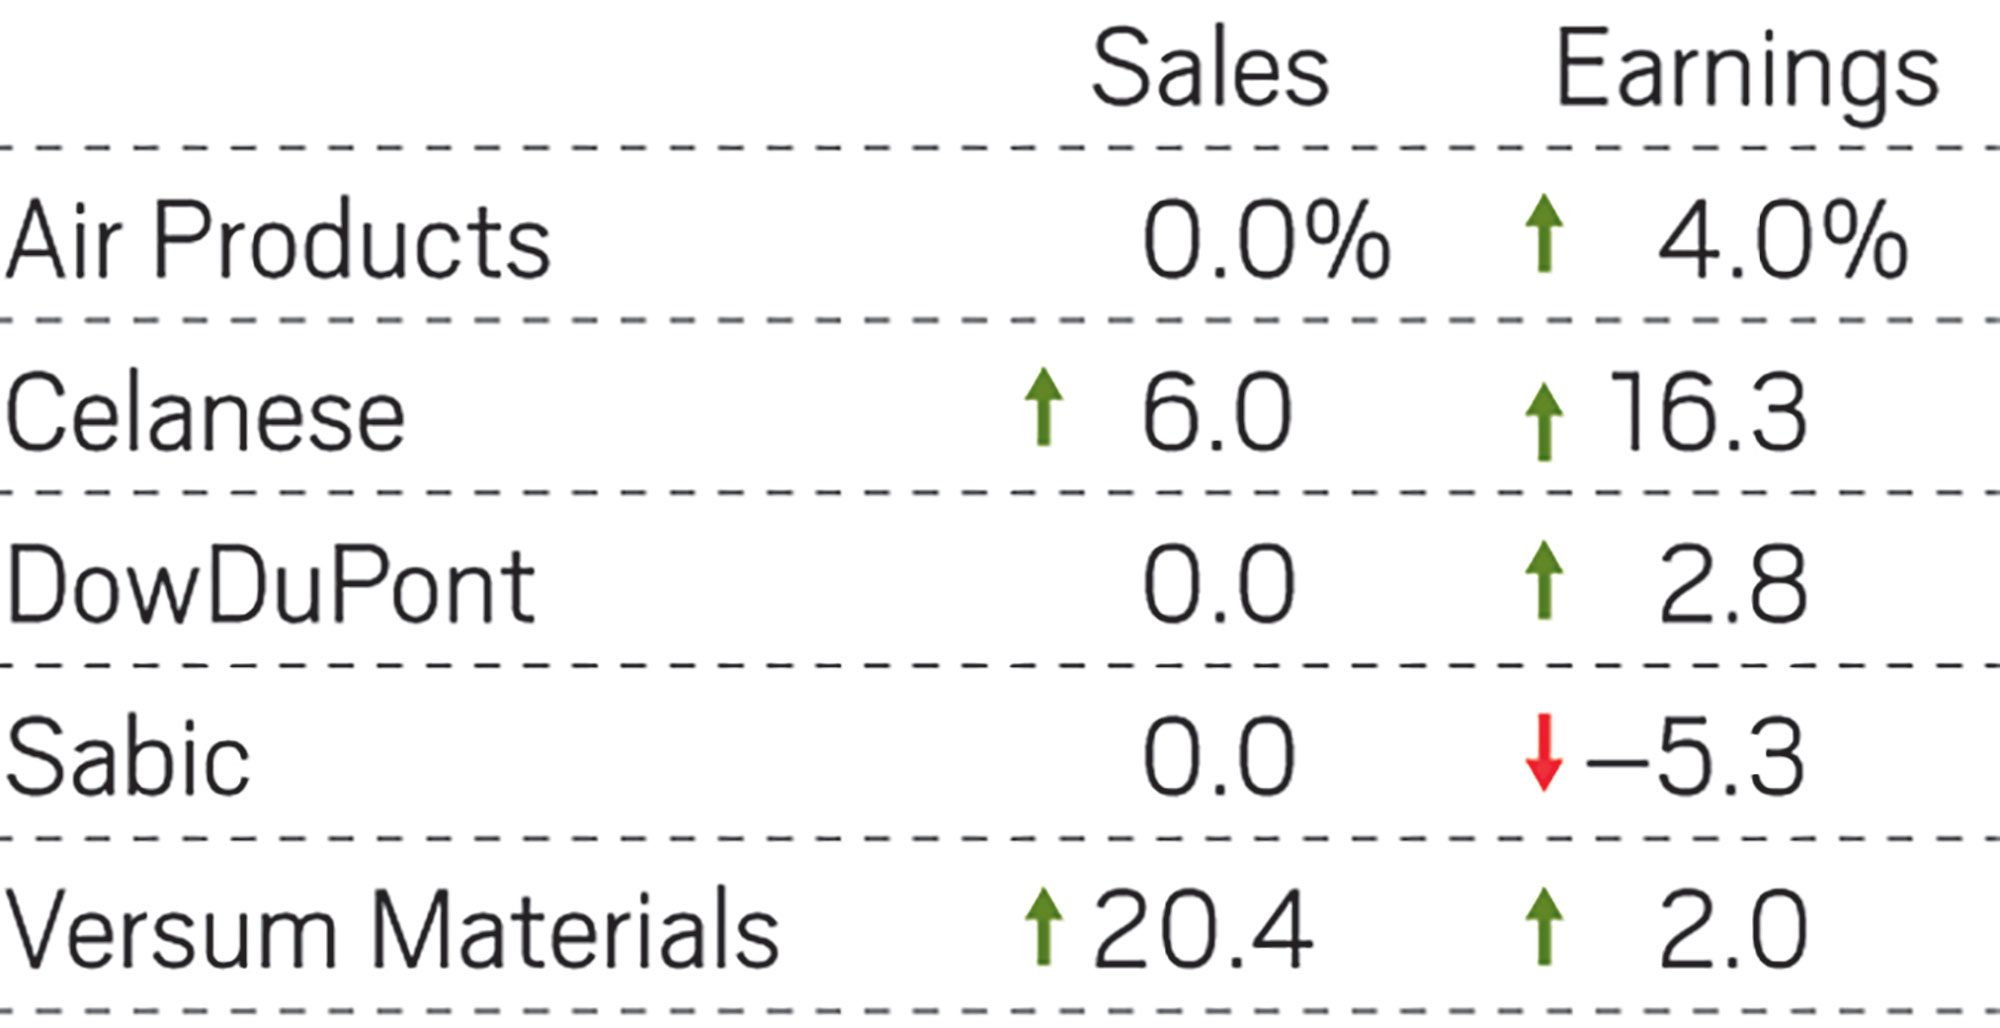 Demand for chemicals falls flat at Air Products, DowDuPont